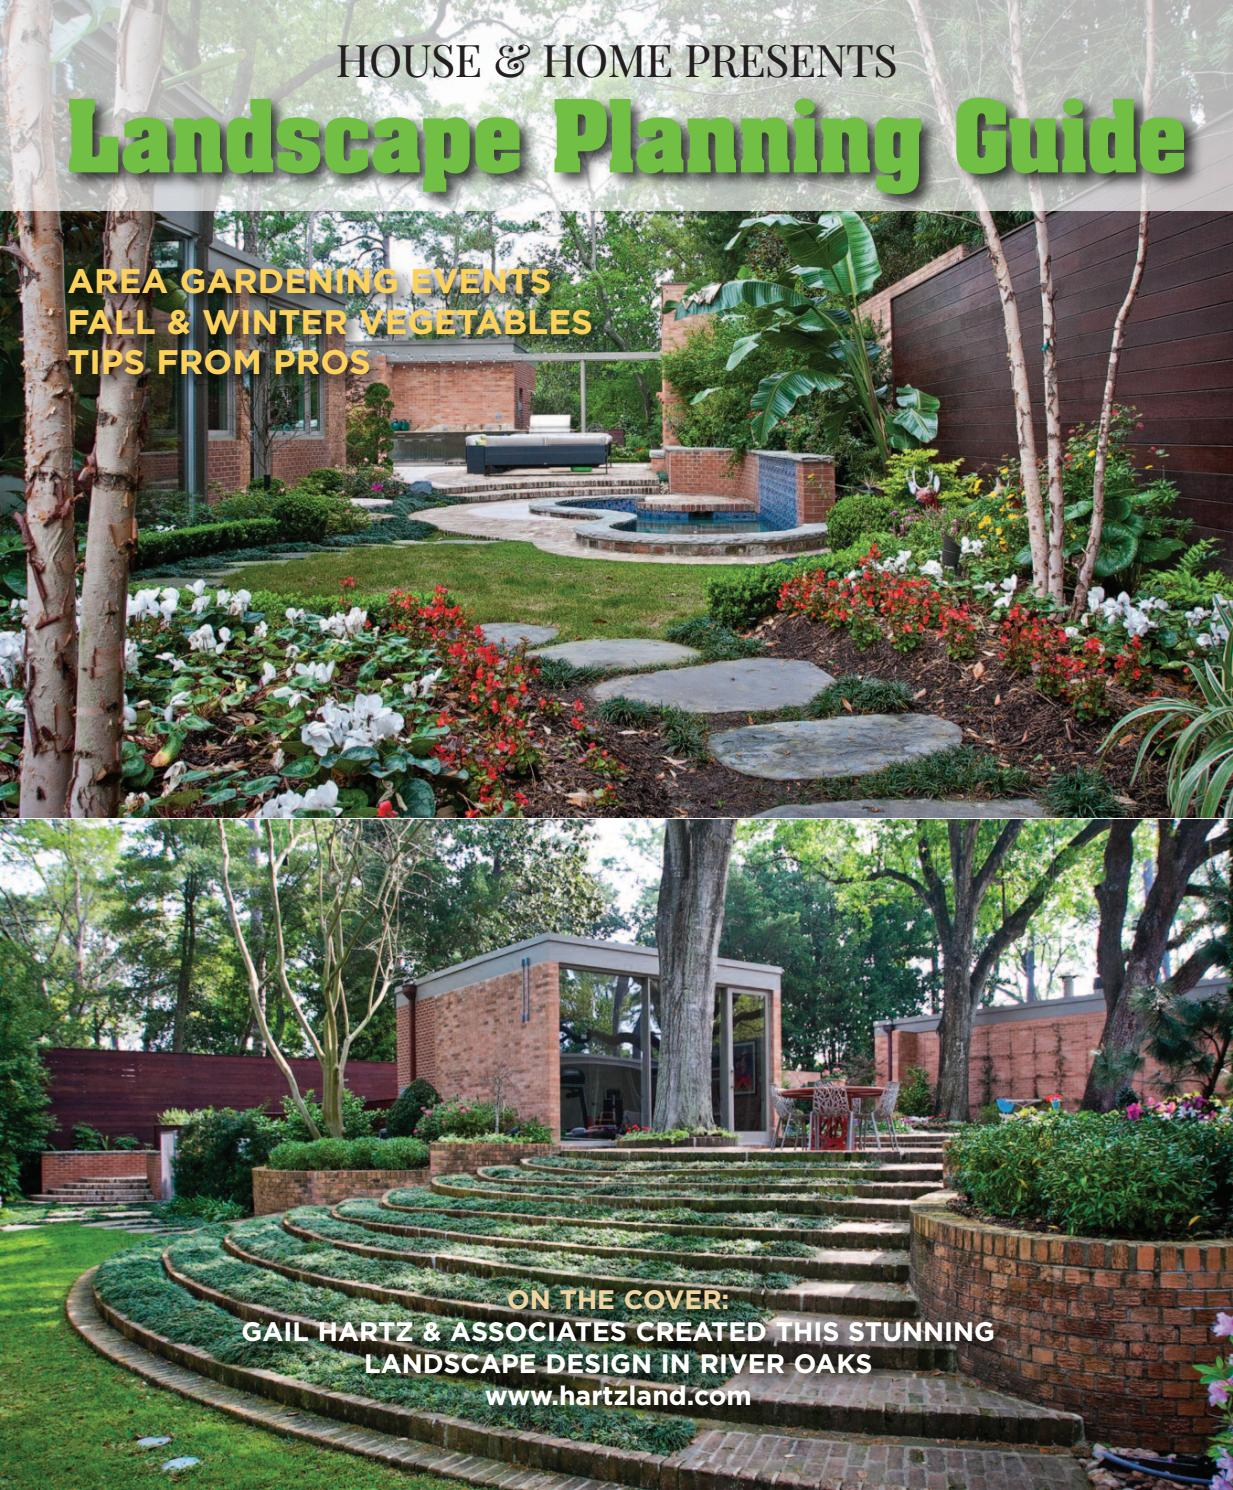 Landscape 0916 Houhousehome Vir By Houston House Home Magazine Issuu